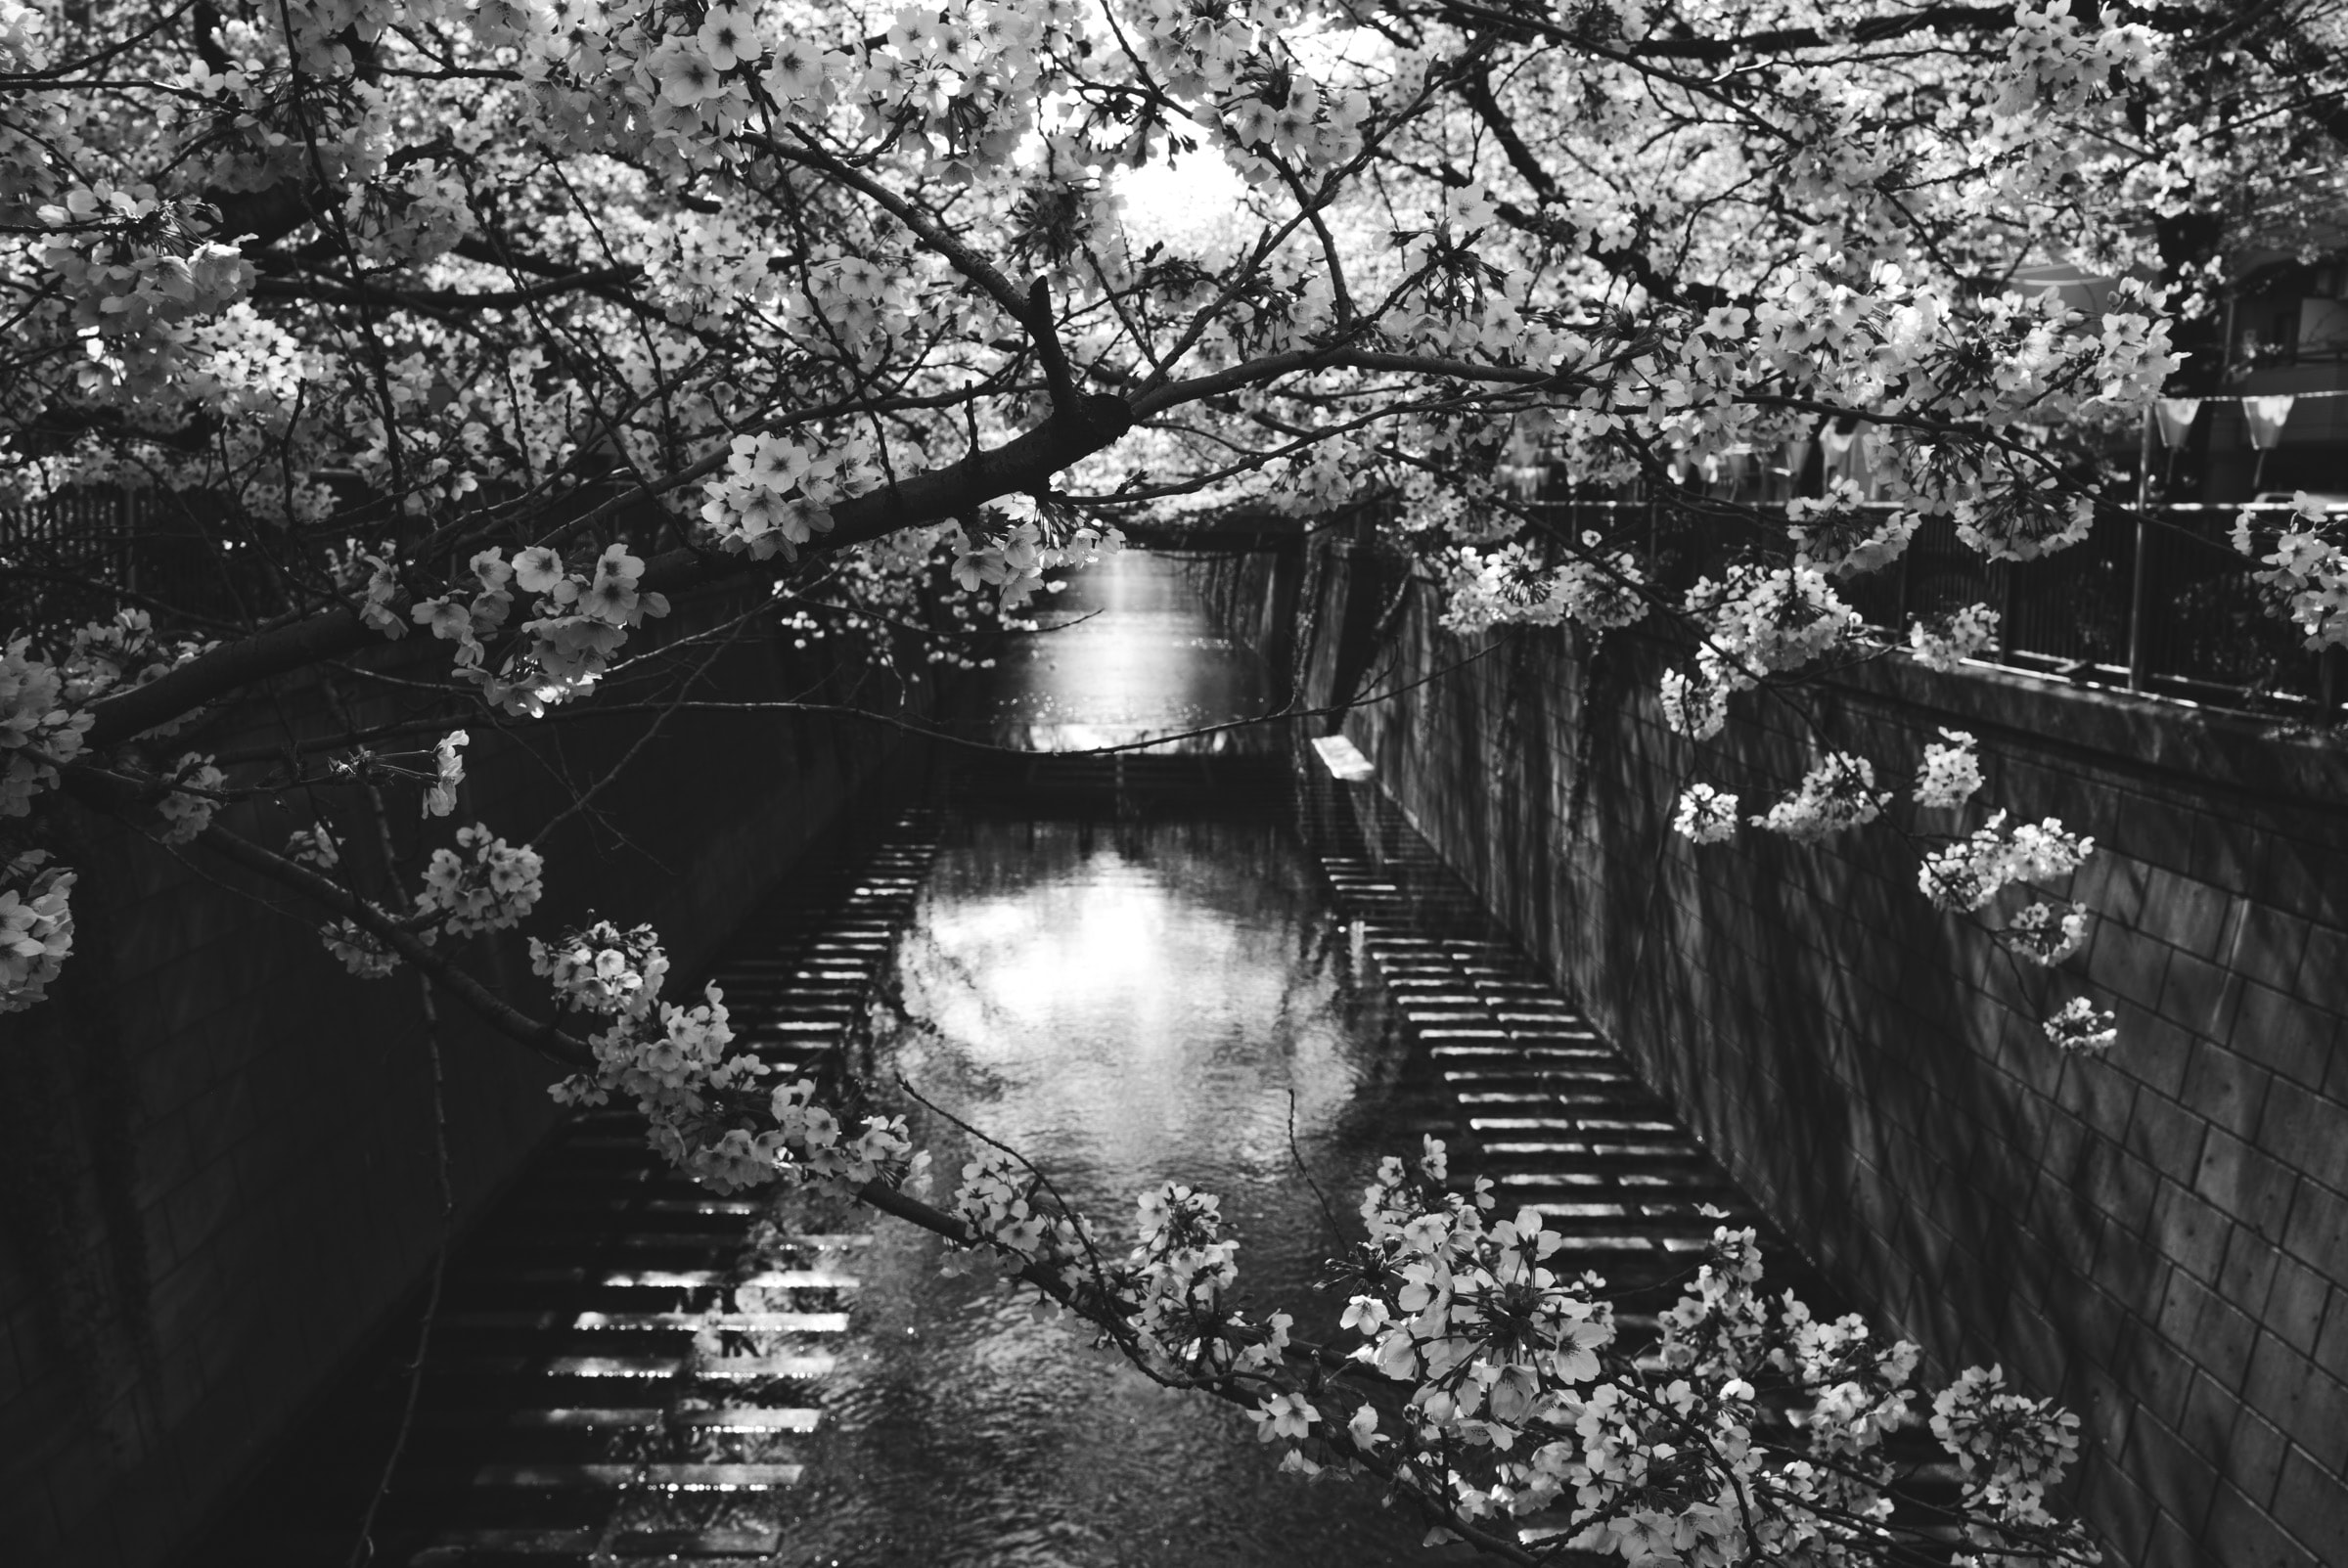 grayscale photography of water under trees